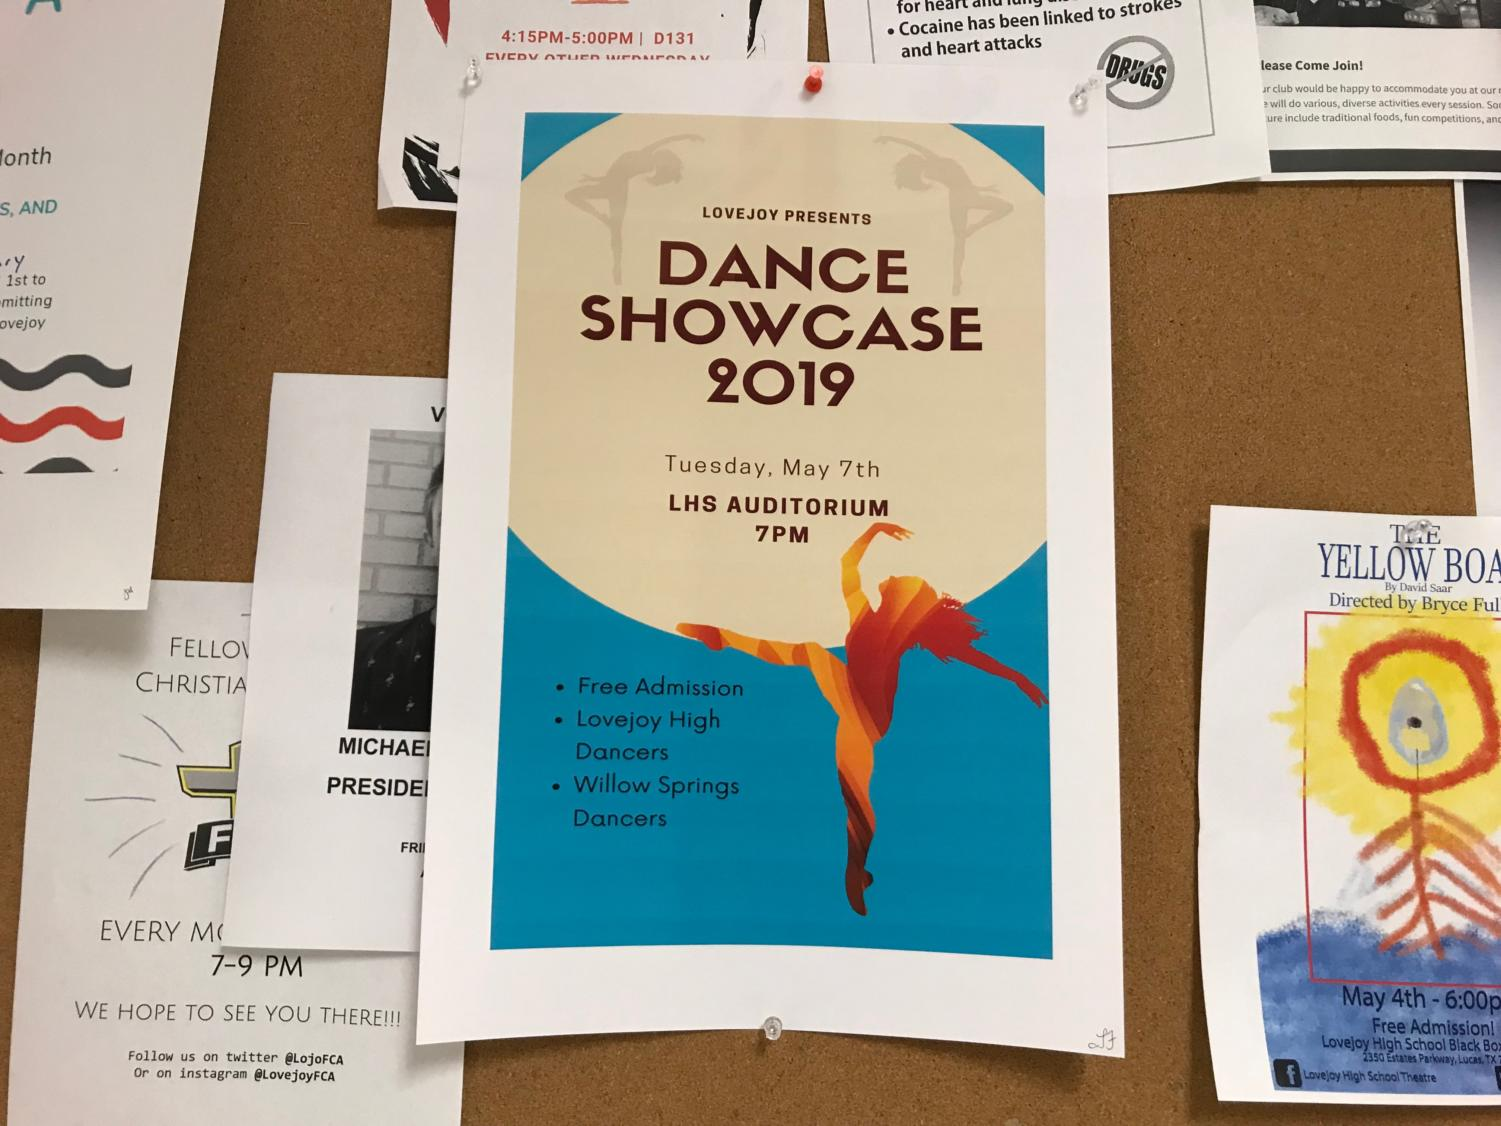 The dance department's spring showcase with occur tonight at Lovejoy High School at 7:00 P.M.